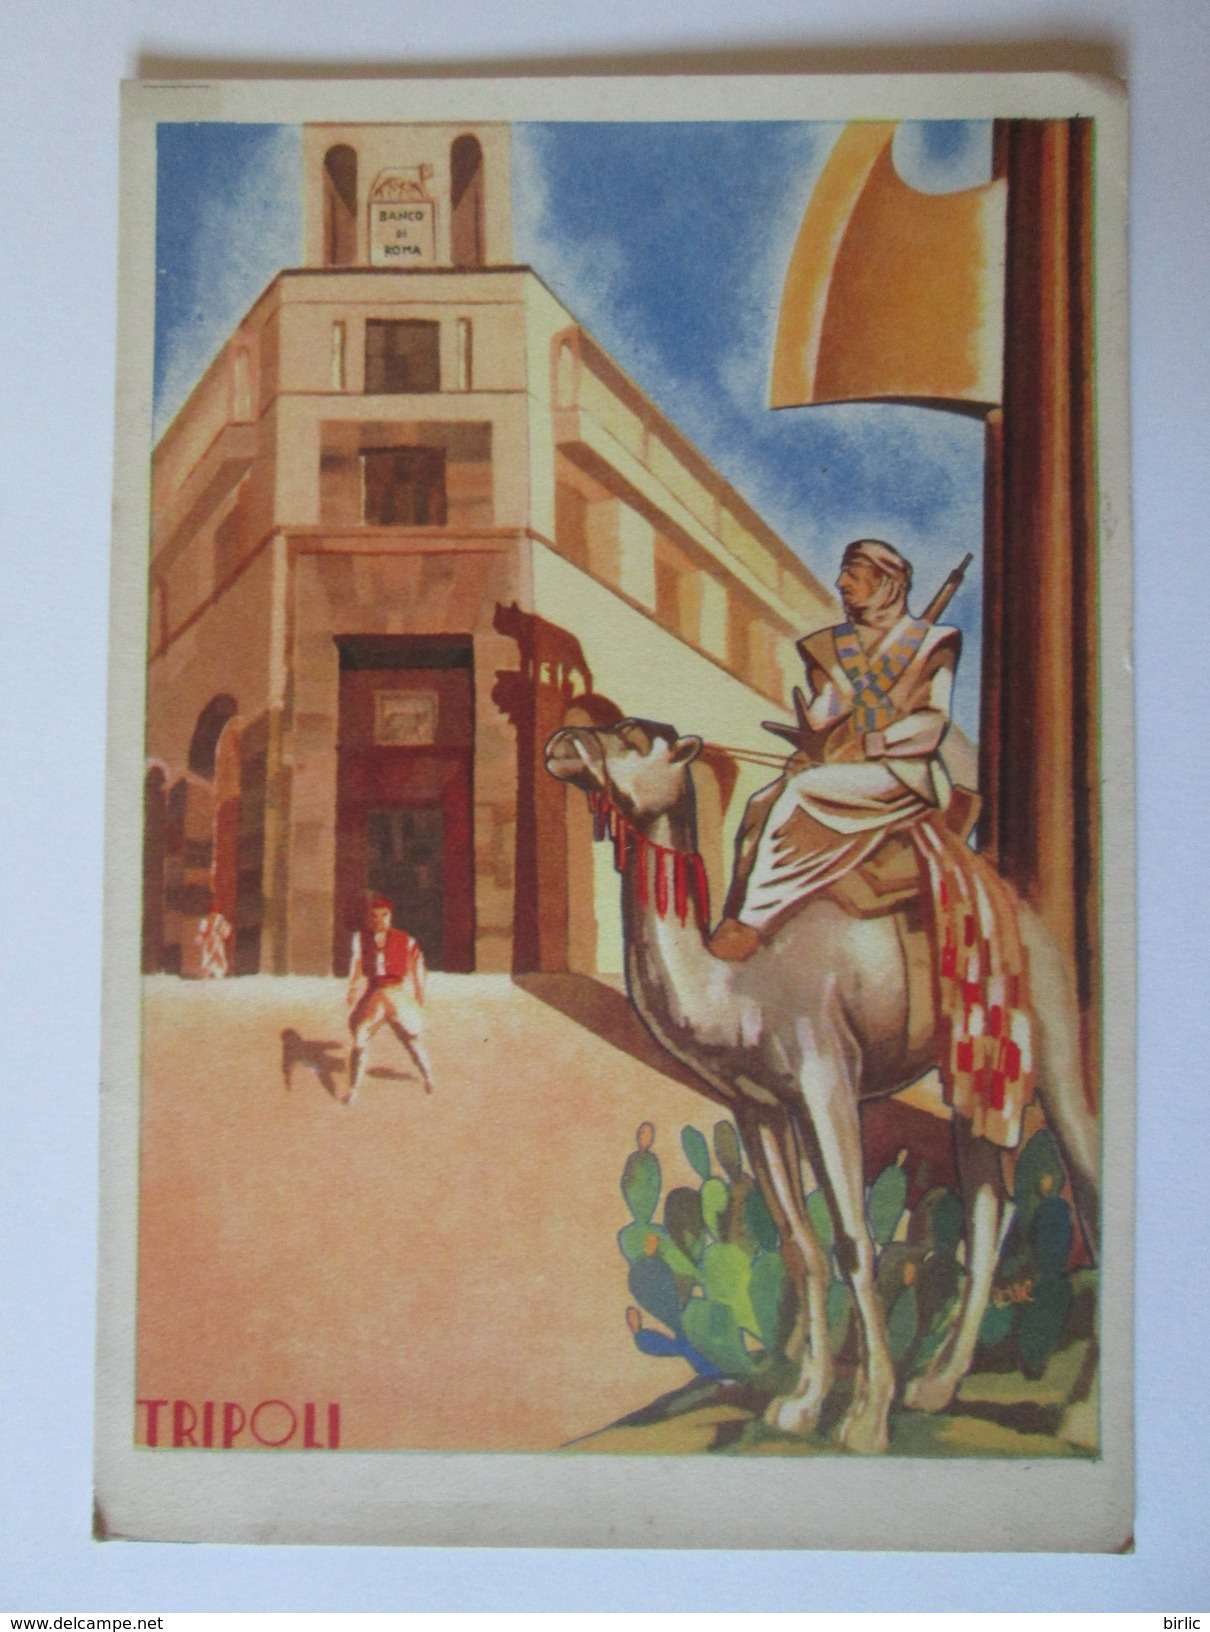 Rare! Lybia-Tripoli/Branch Of The Roma Bank,Italian Advertising Unused Postcard From The 30s - Libia